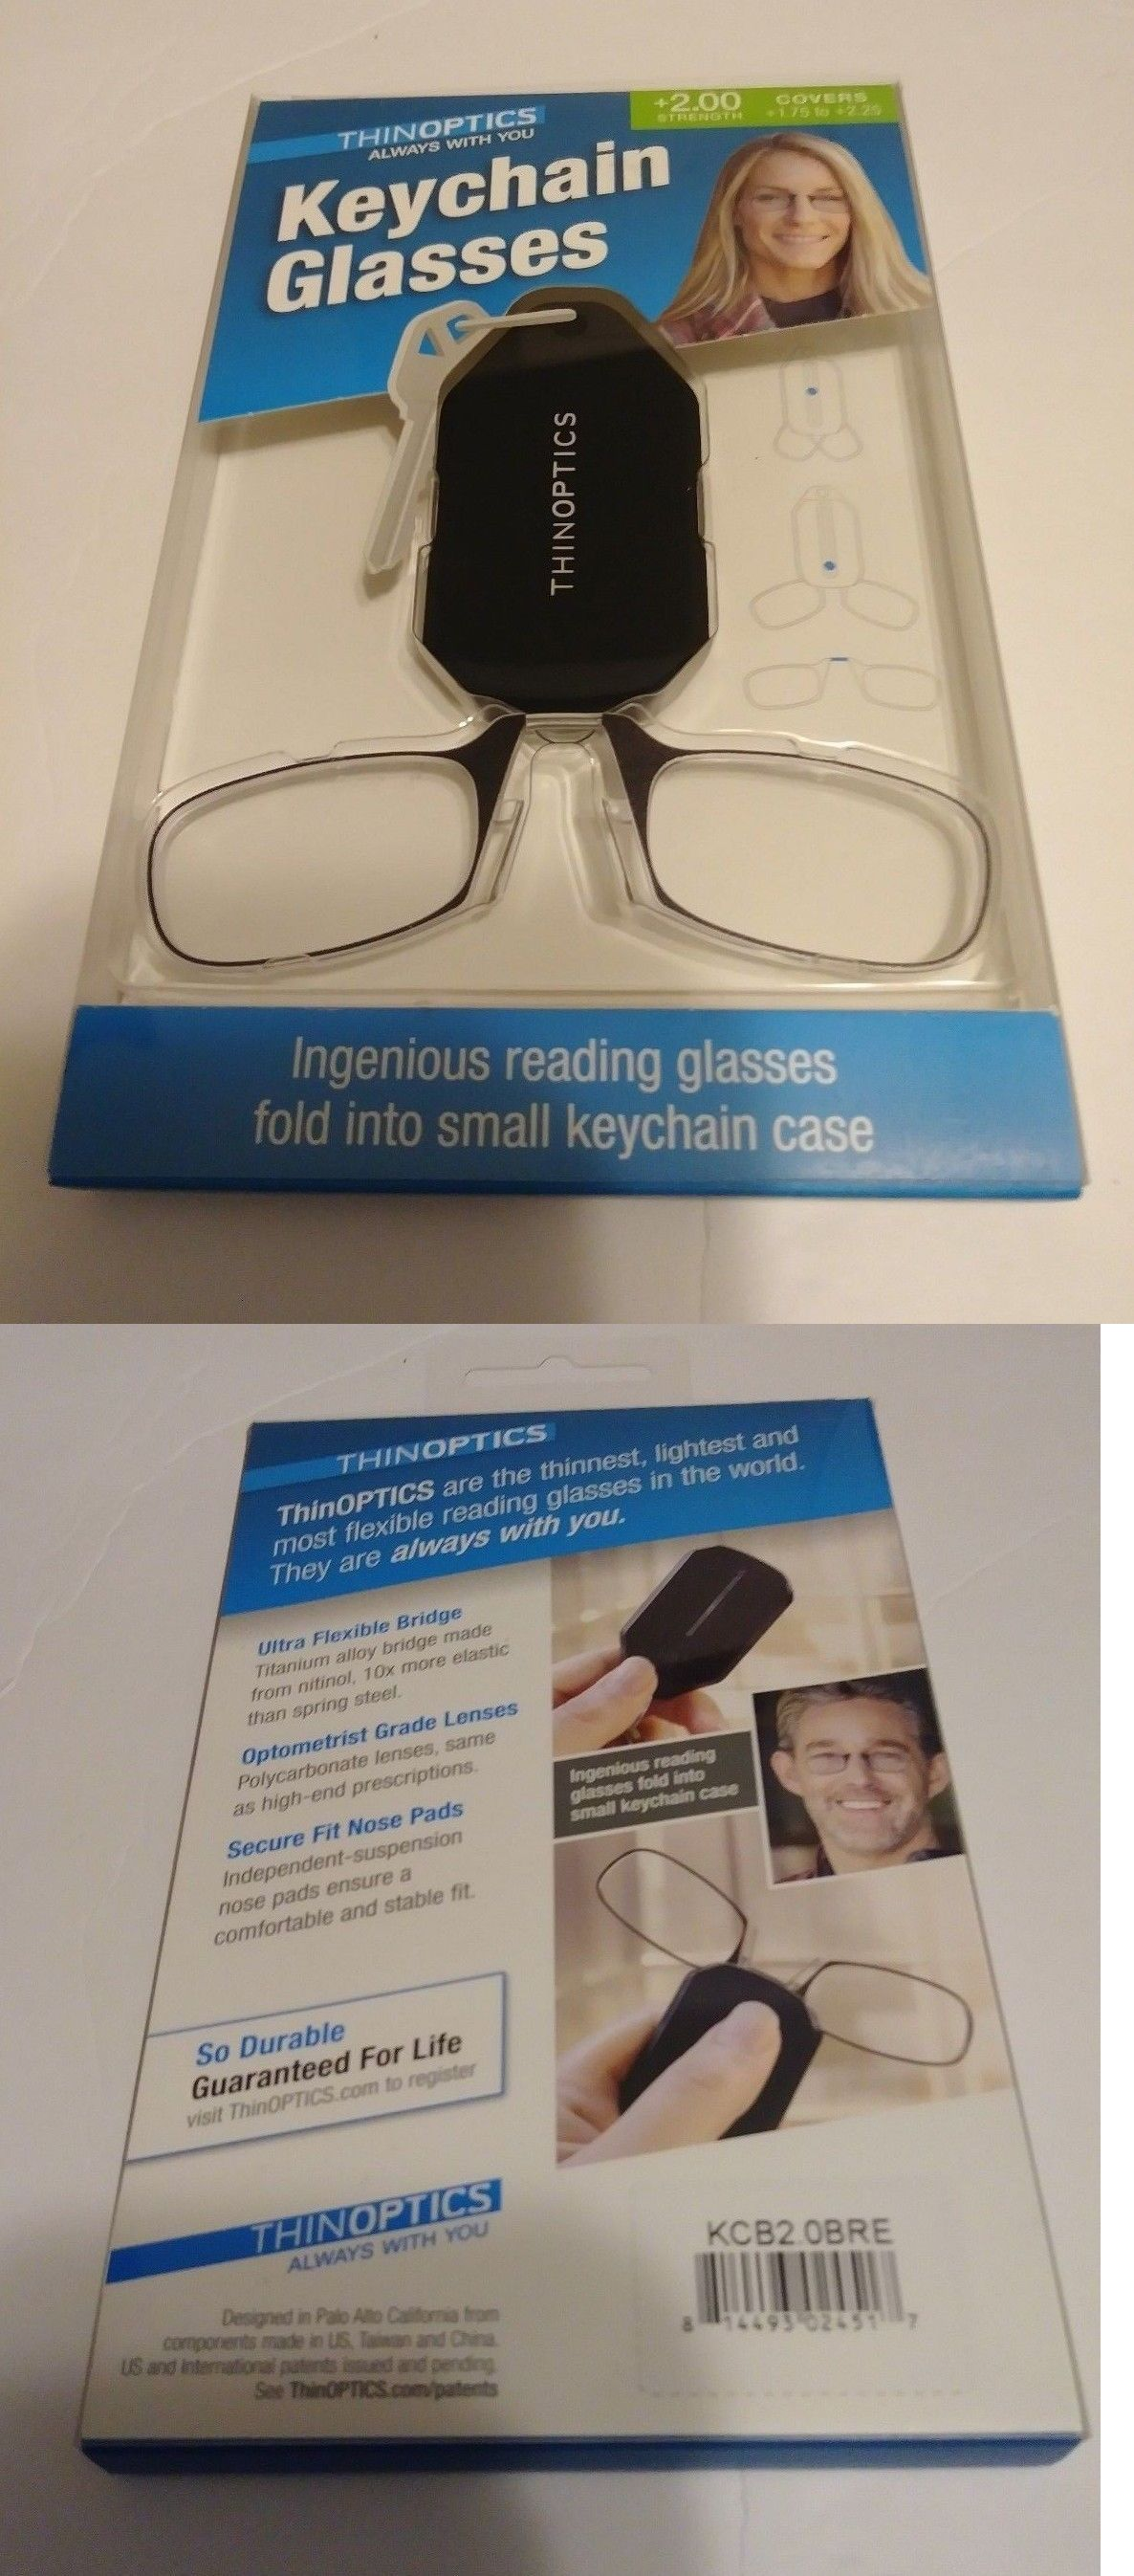 c4574b4c19a Vision Care 31414  Thinoptics Keychain Reading Glasses +2.00 Strength  Glasses And Keychain Case Black